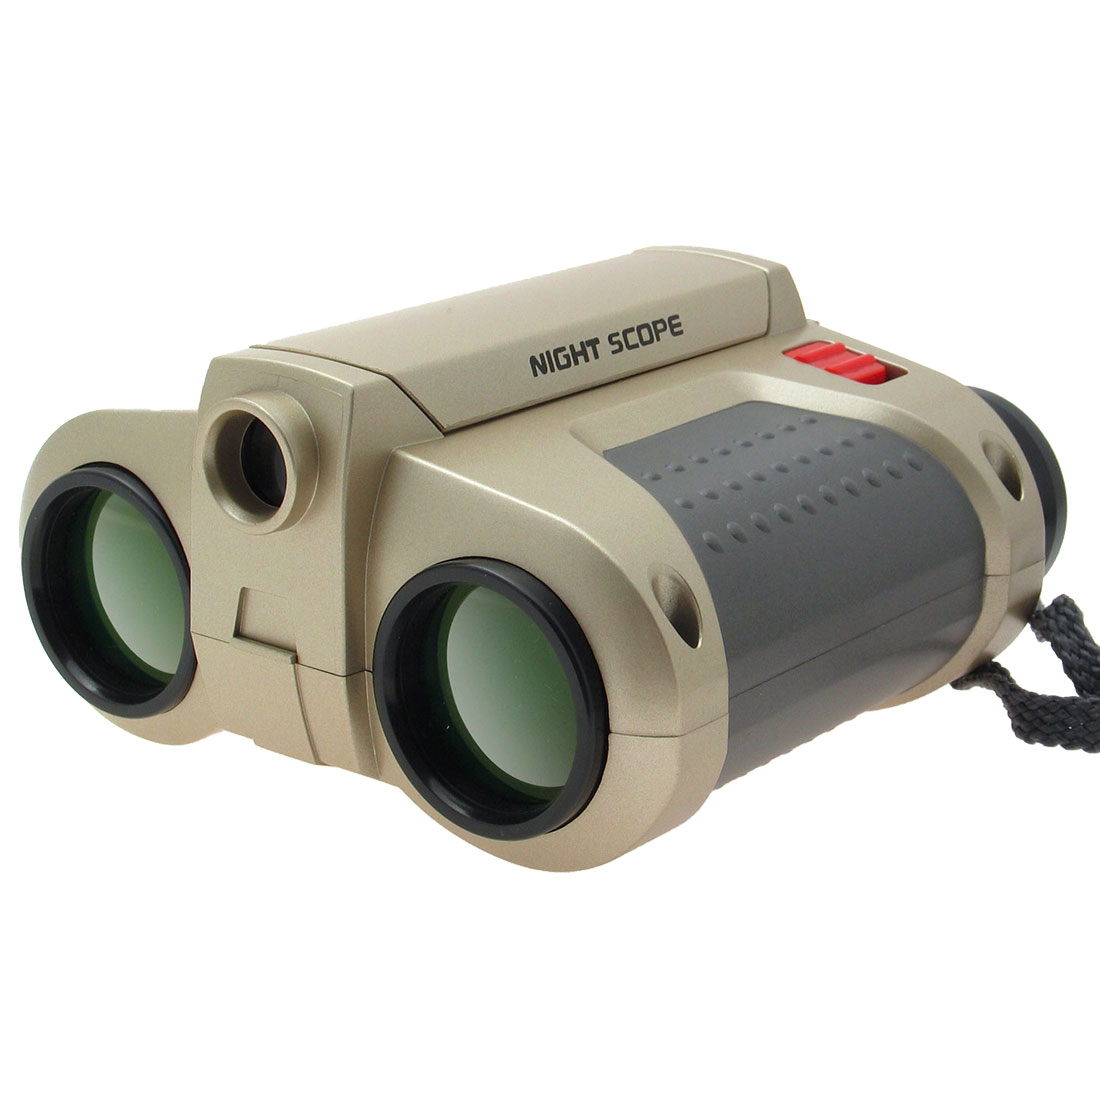 Toy Binoculars 4X30mm with Light for Children